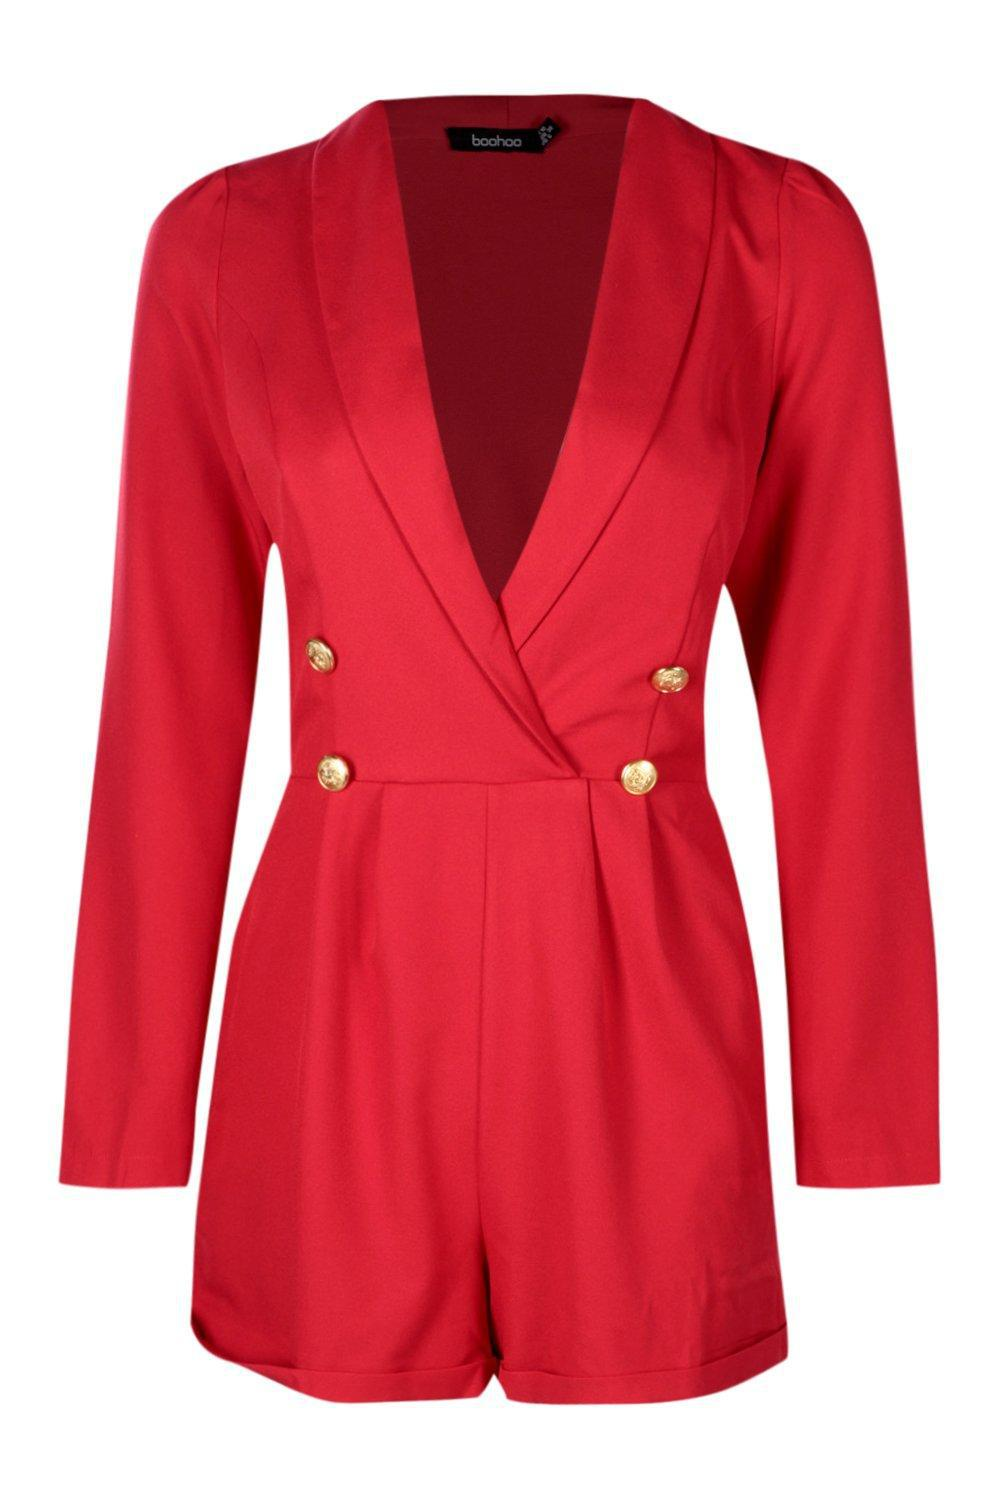 5903ab4f76a3 Boohoo Military Button Tuxedo Romper in Red - Lyst